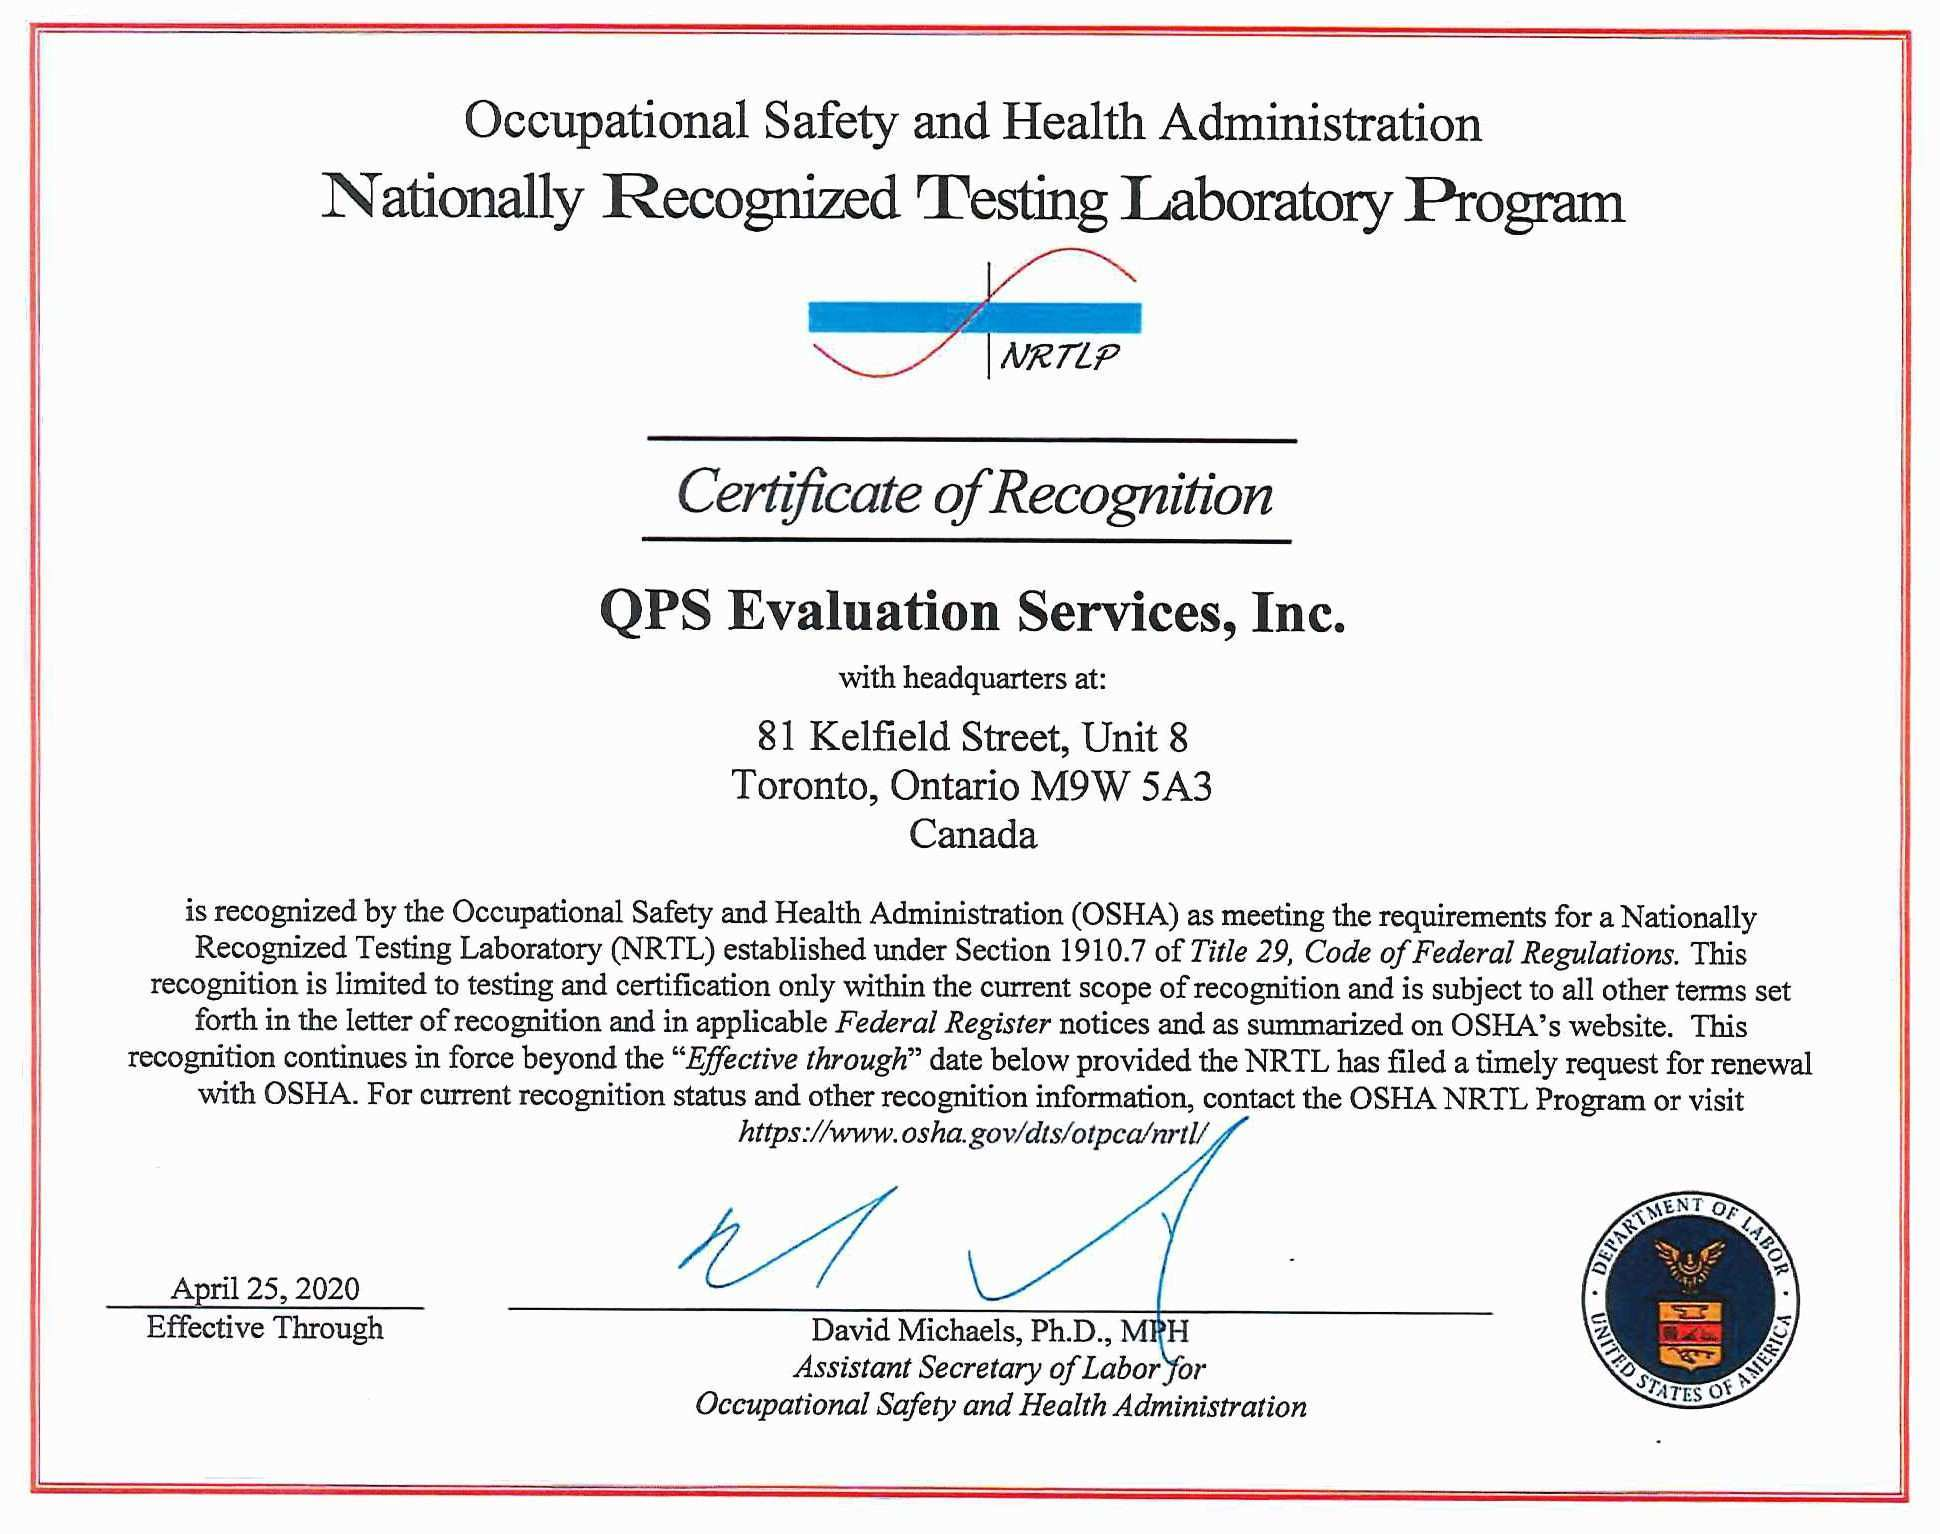 Attractive Healthcare Administration Certification Image Collection